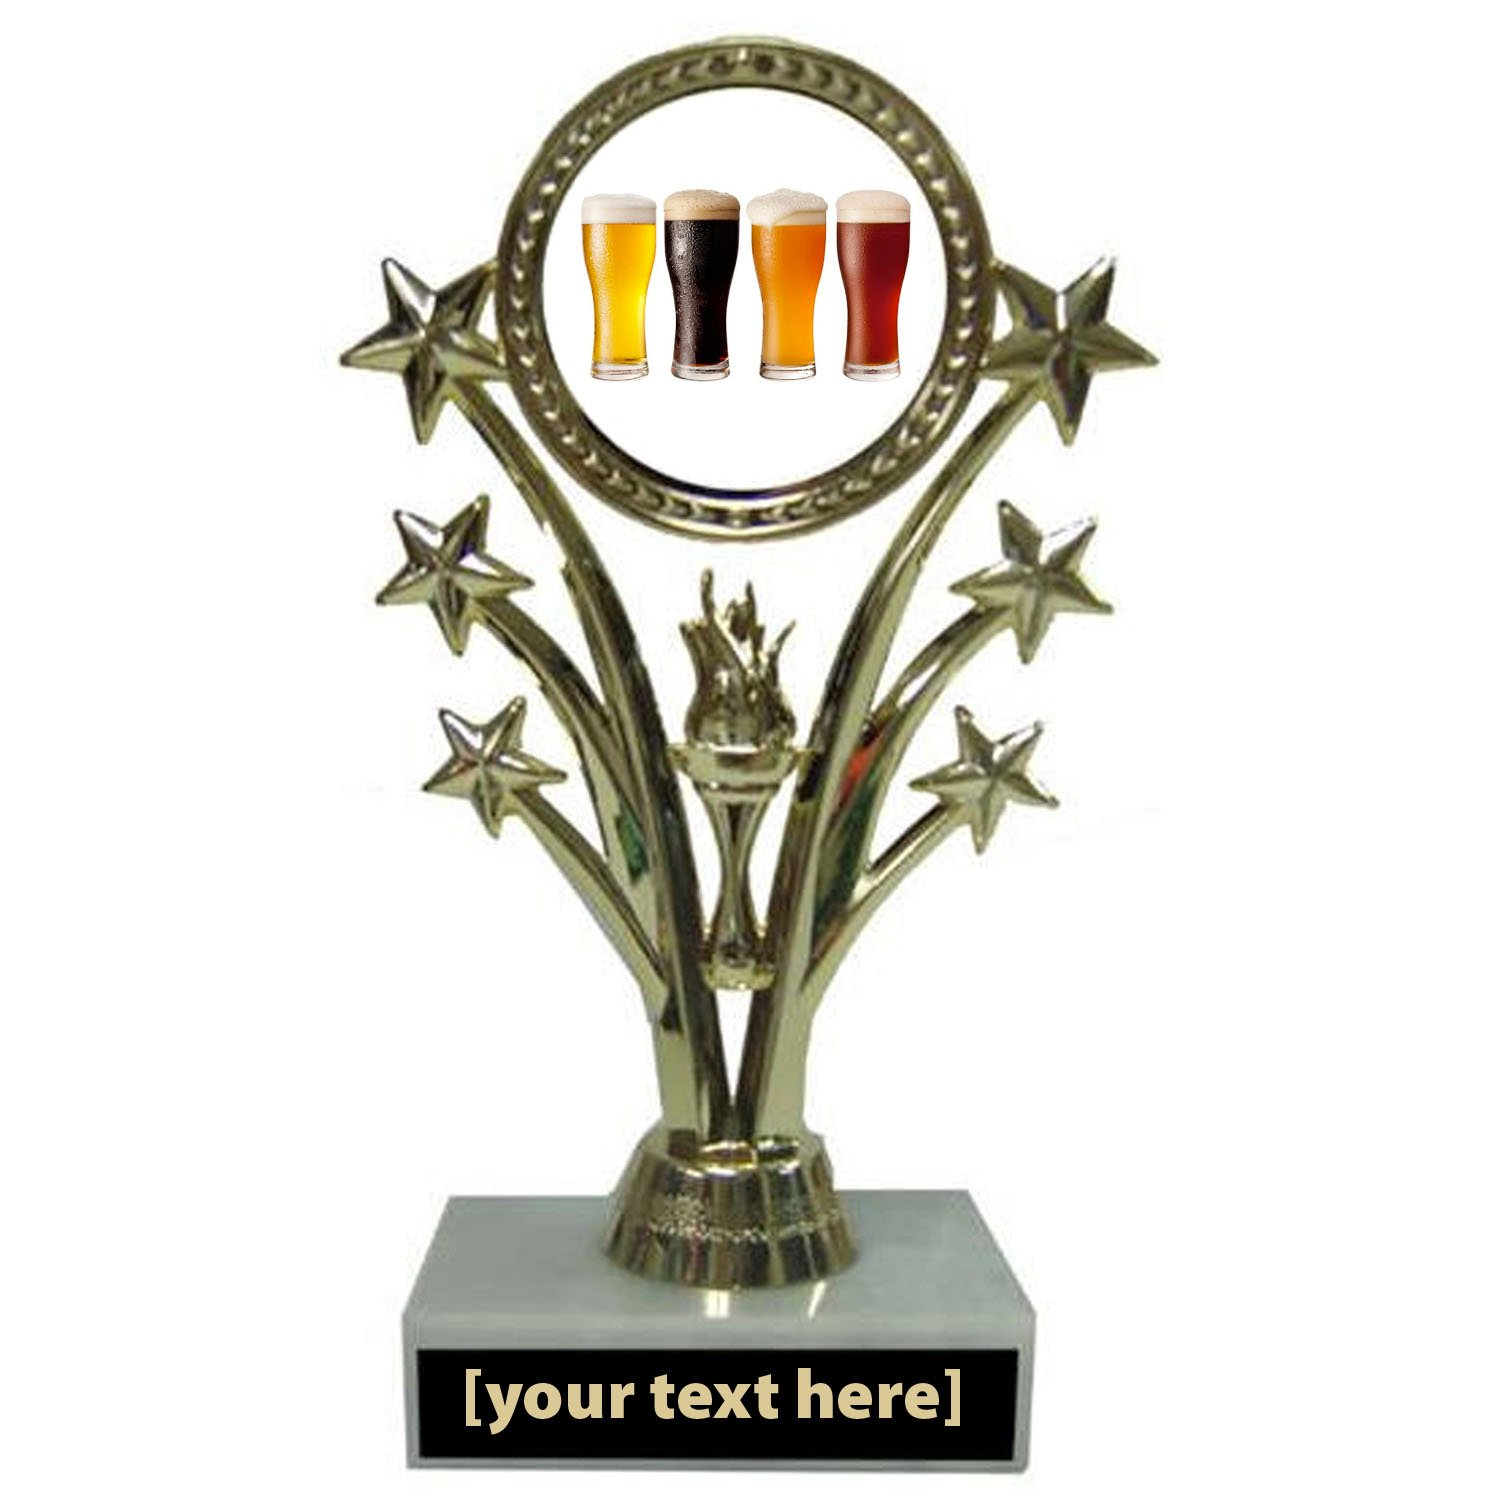 Star Beer Tasting Trophy